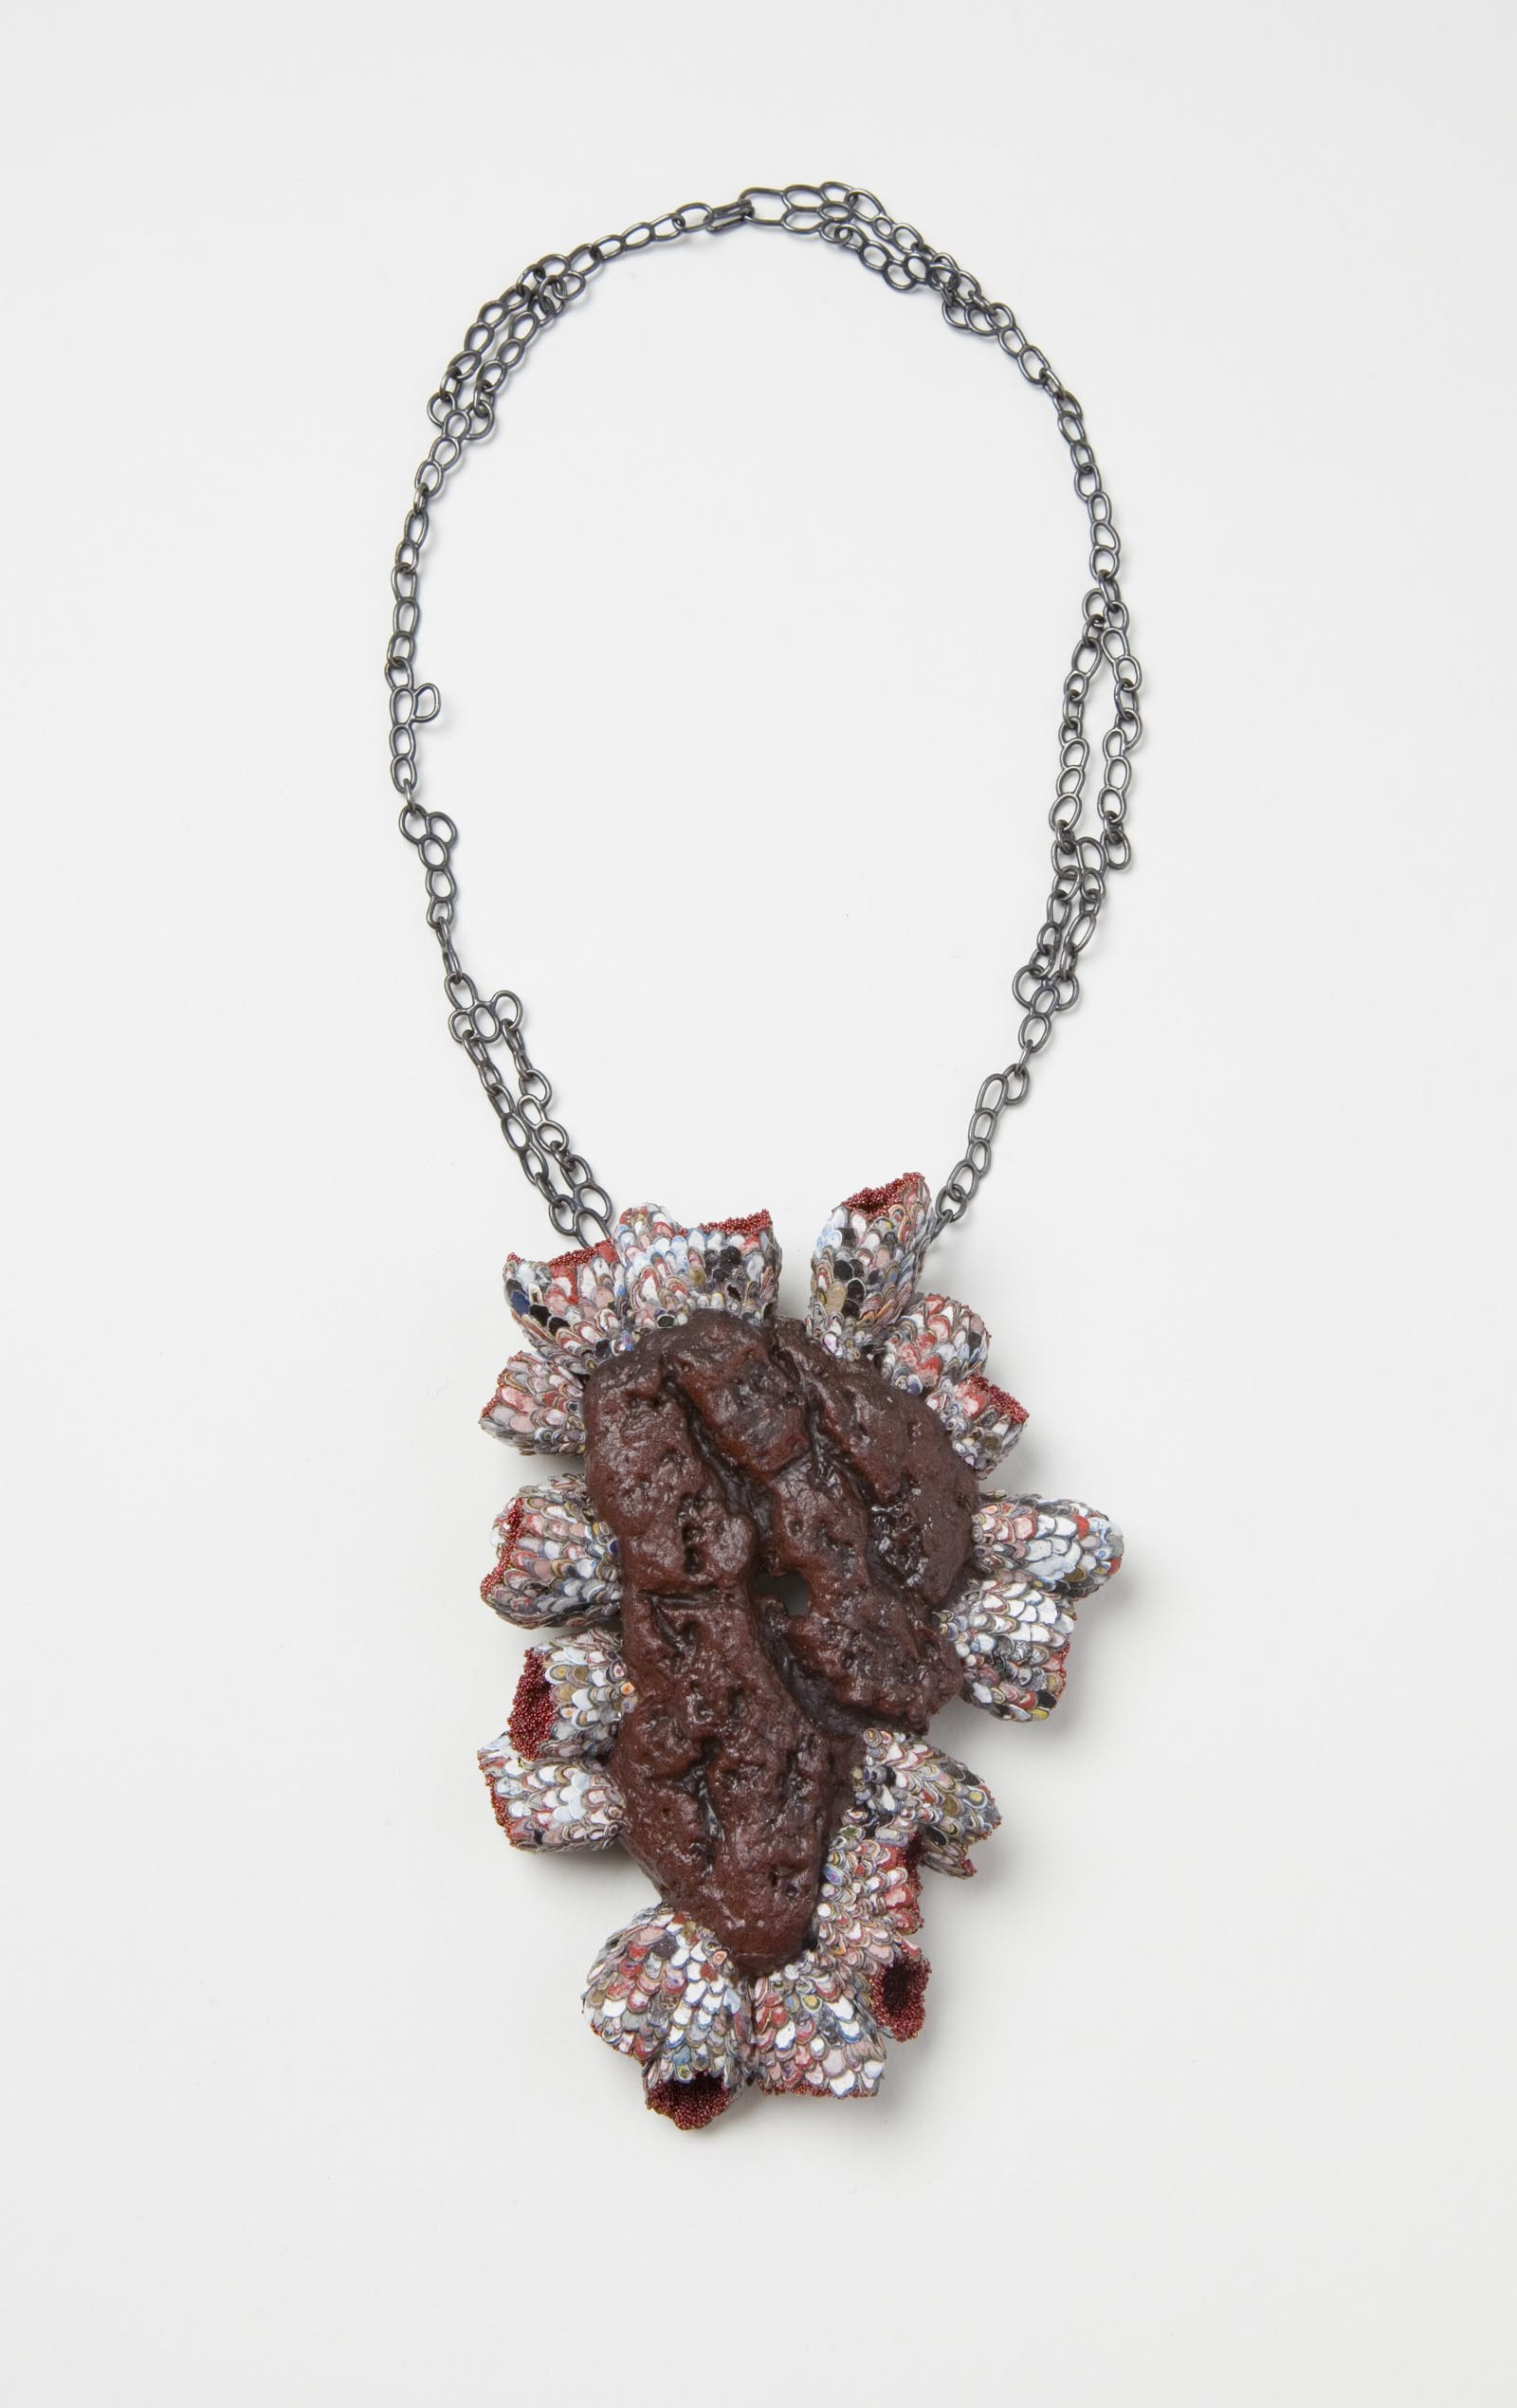 """Symbiosis 3"" I Necklace, 2016 I Graffiti, wood, almond shells, glass, silver, paint  I Photo: Mirei Takeuchi"